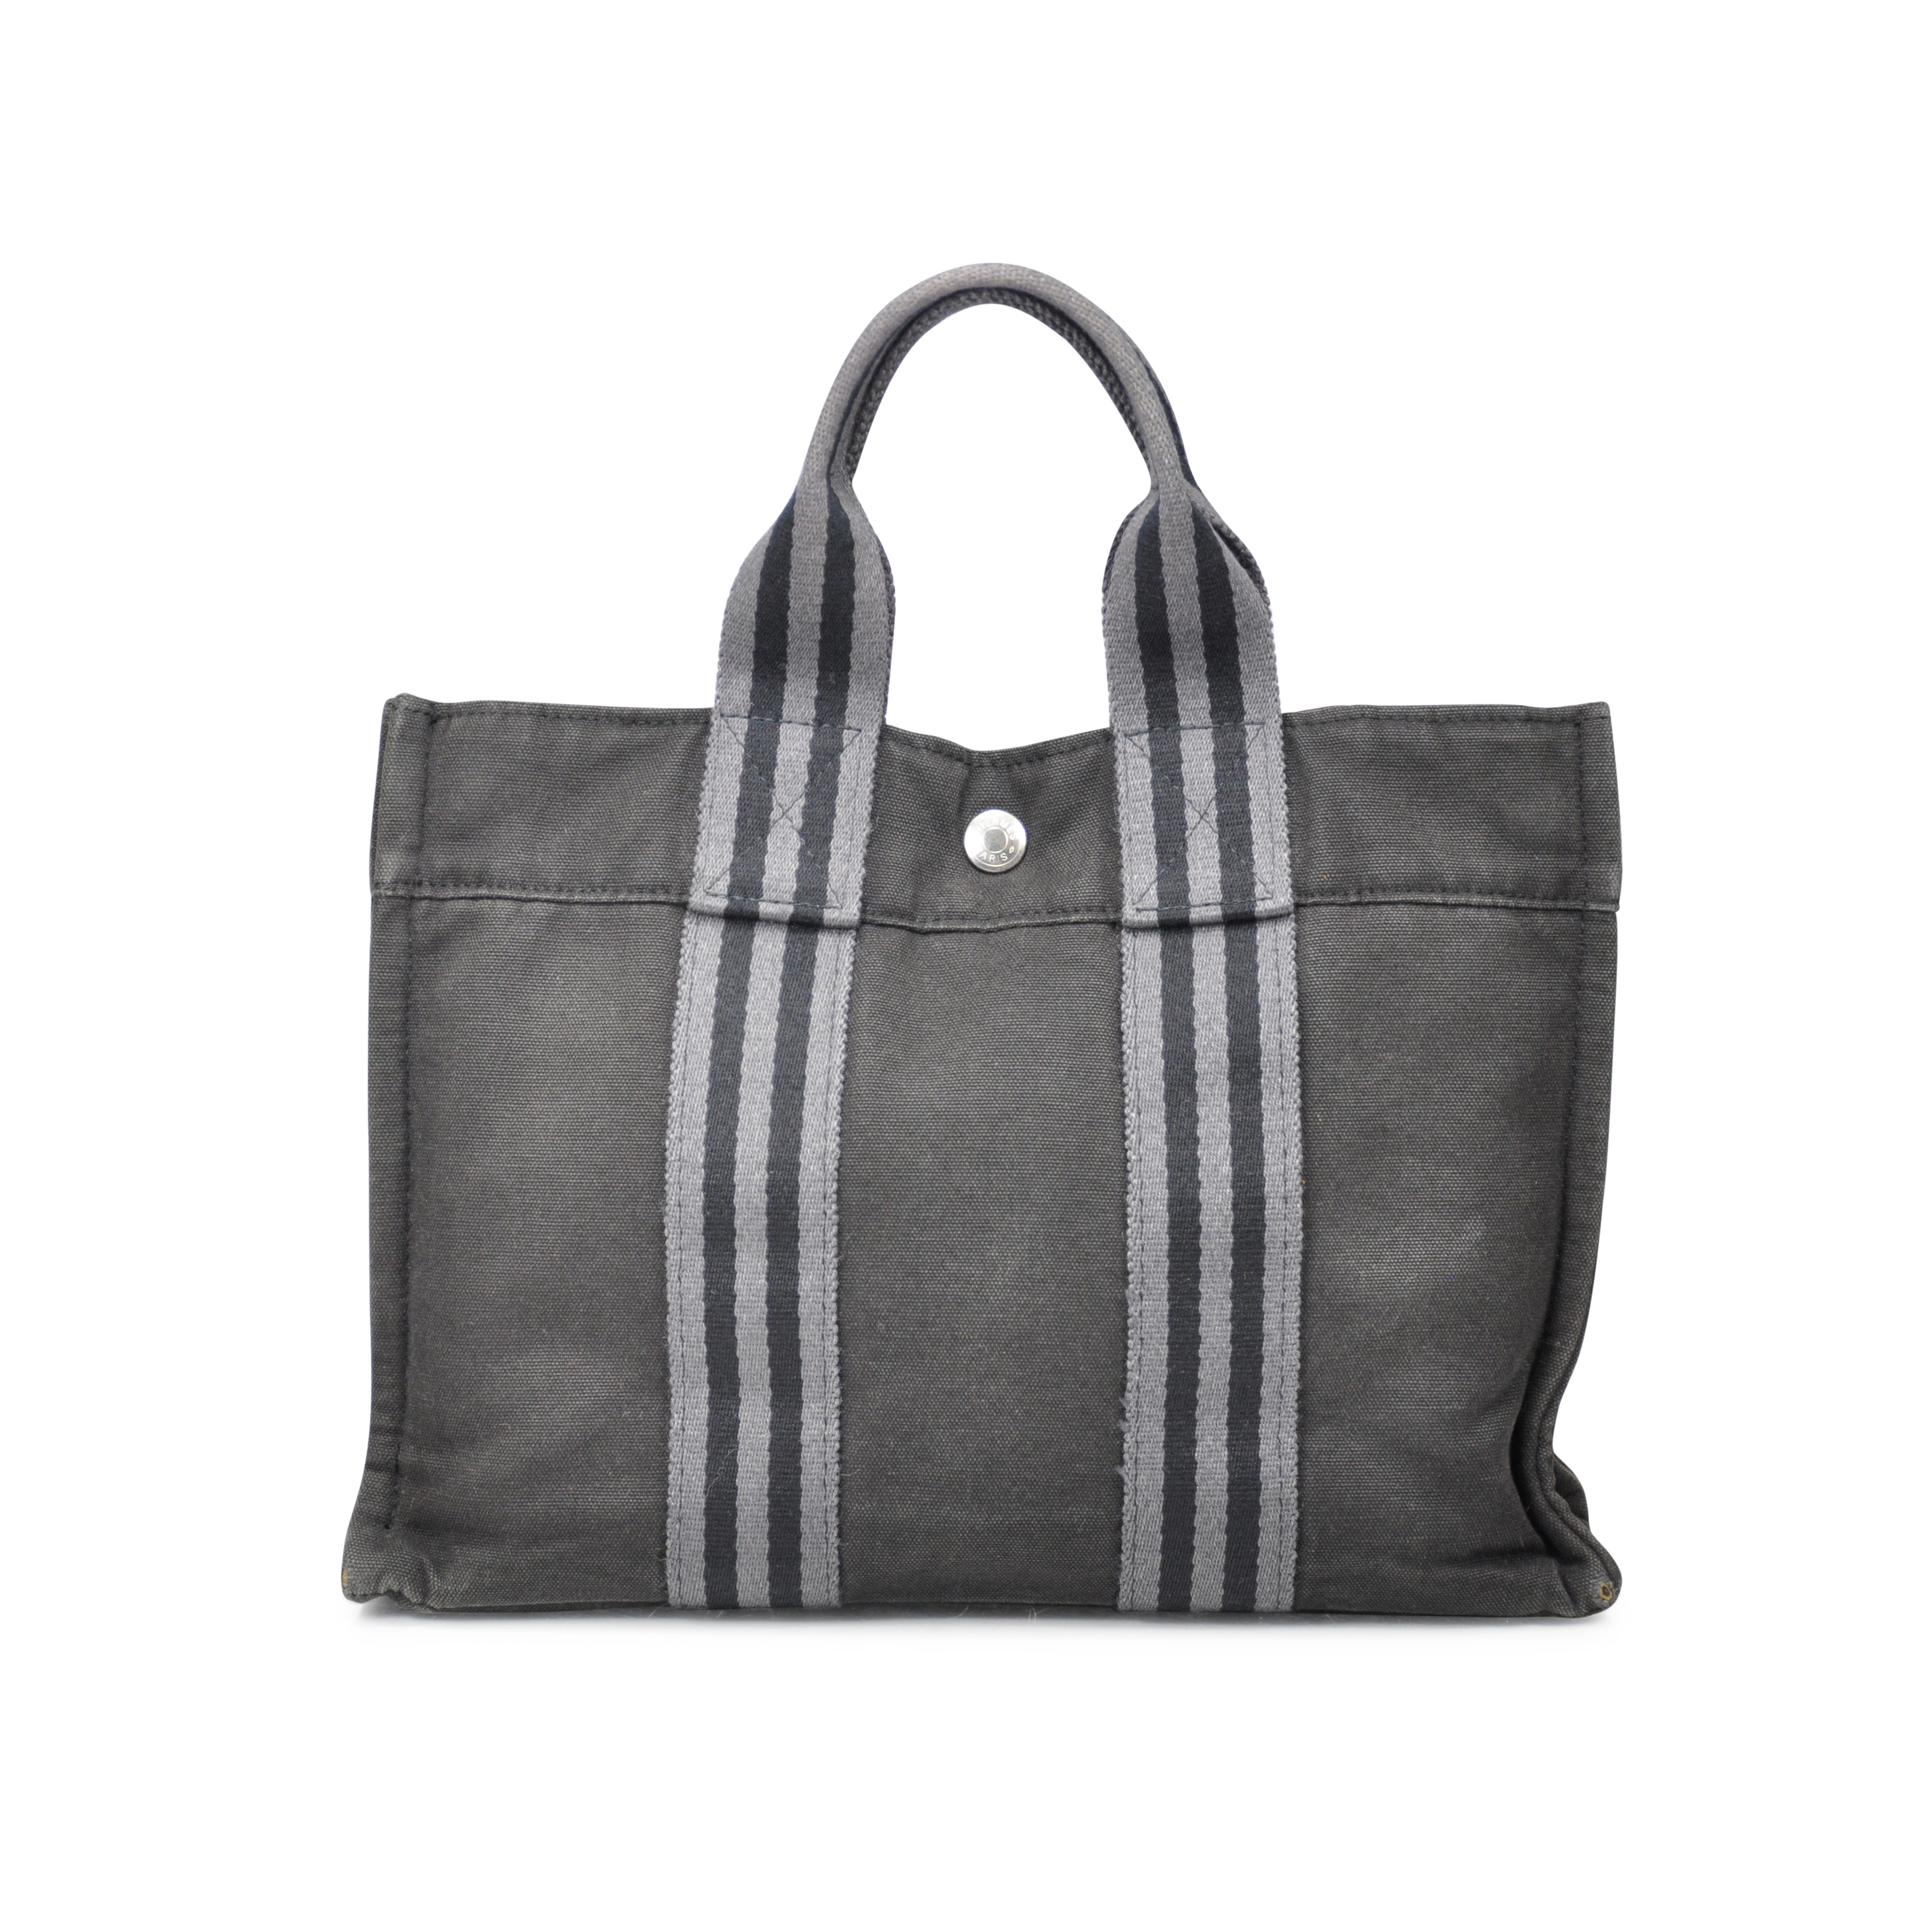 second hand hermes fourre tout pm bag the fifth collection. Black Bedroom Furniture Sets. Home Design Ideas